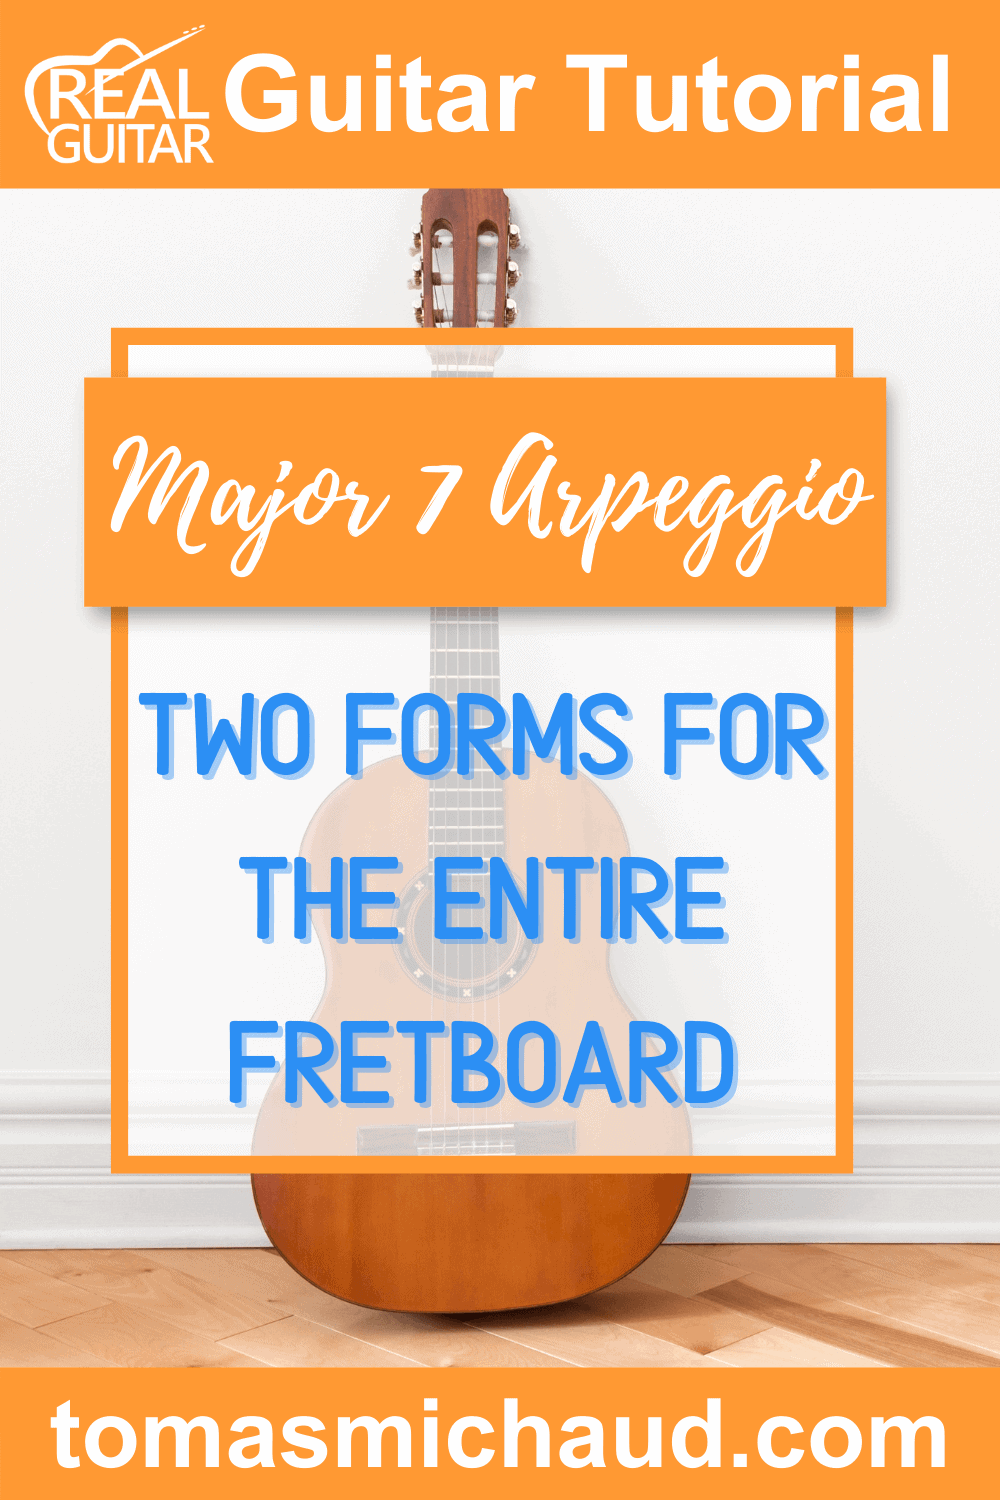 Major 7 Arpeggio: Two Forms For The Entire Fretboard